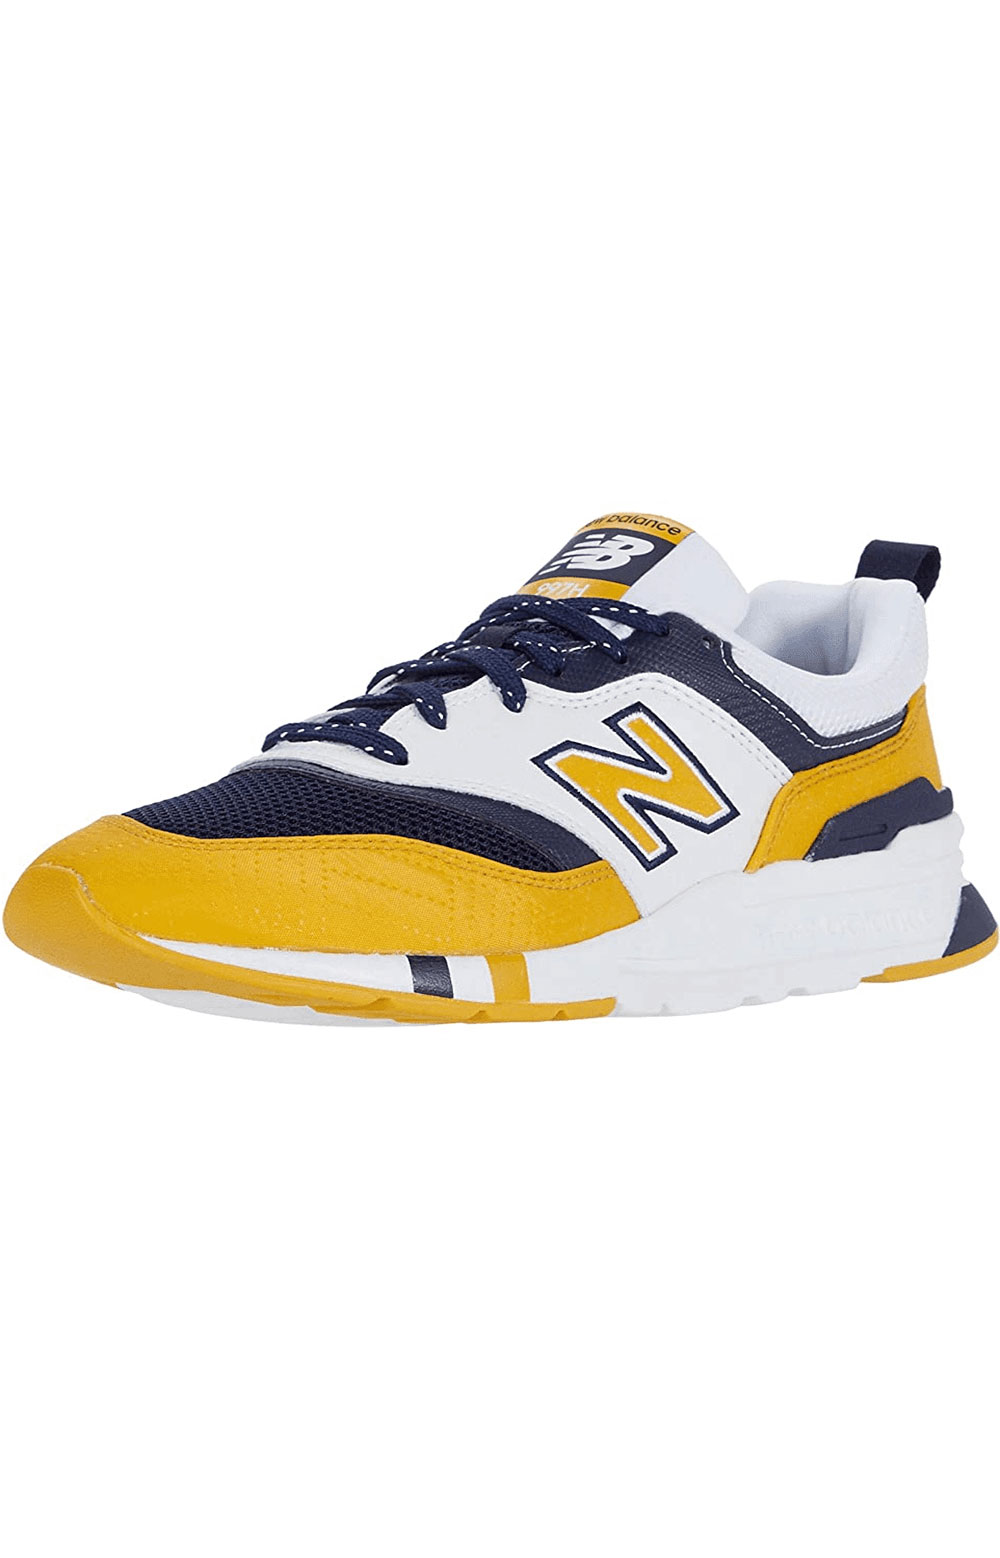 (CM997HBY) 997H Shoes - Yellow/Navy 2